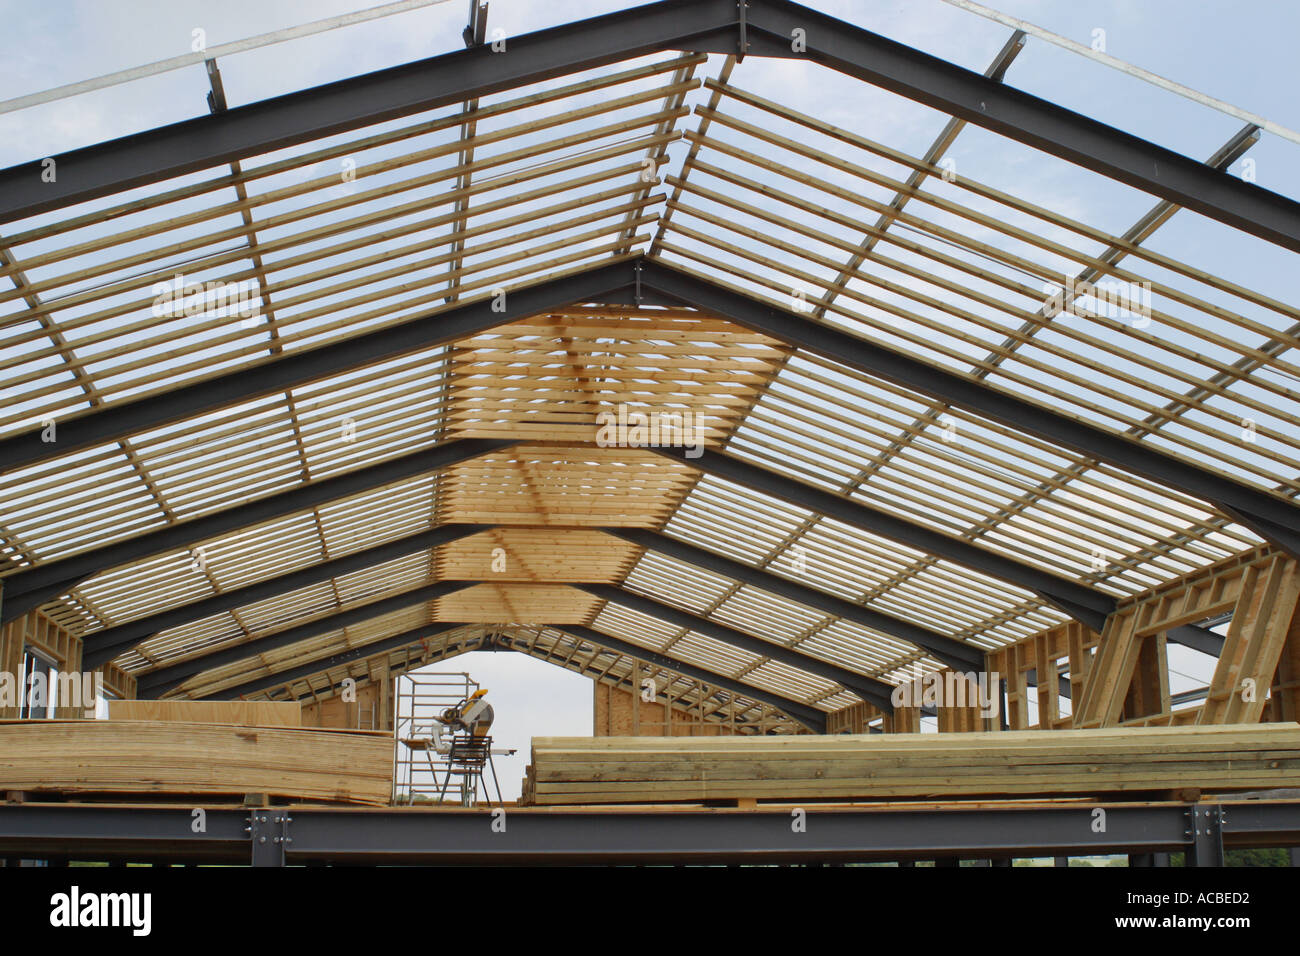 steel frame building under construction showing rib like pattern with timbers stock photo